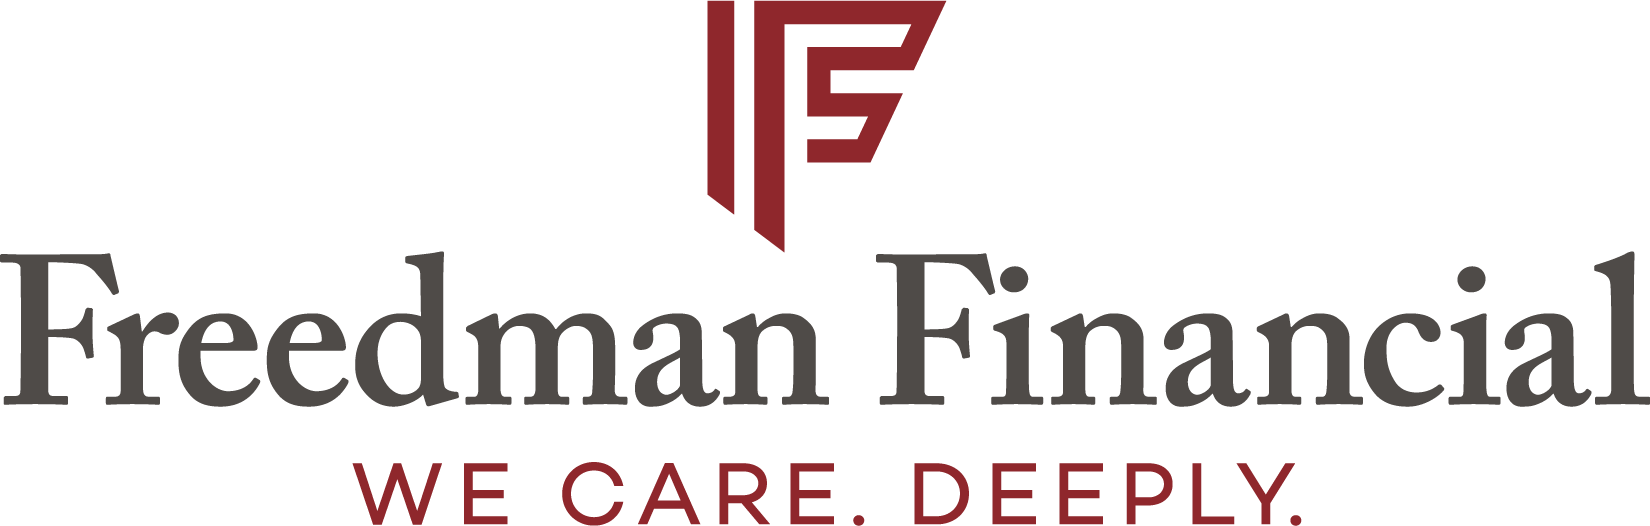 FreedmanFinancial Logo